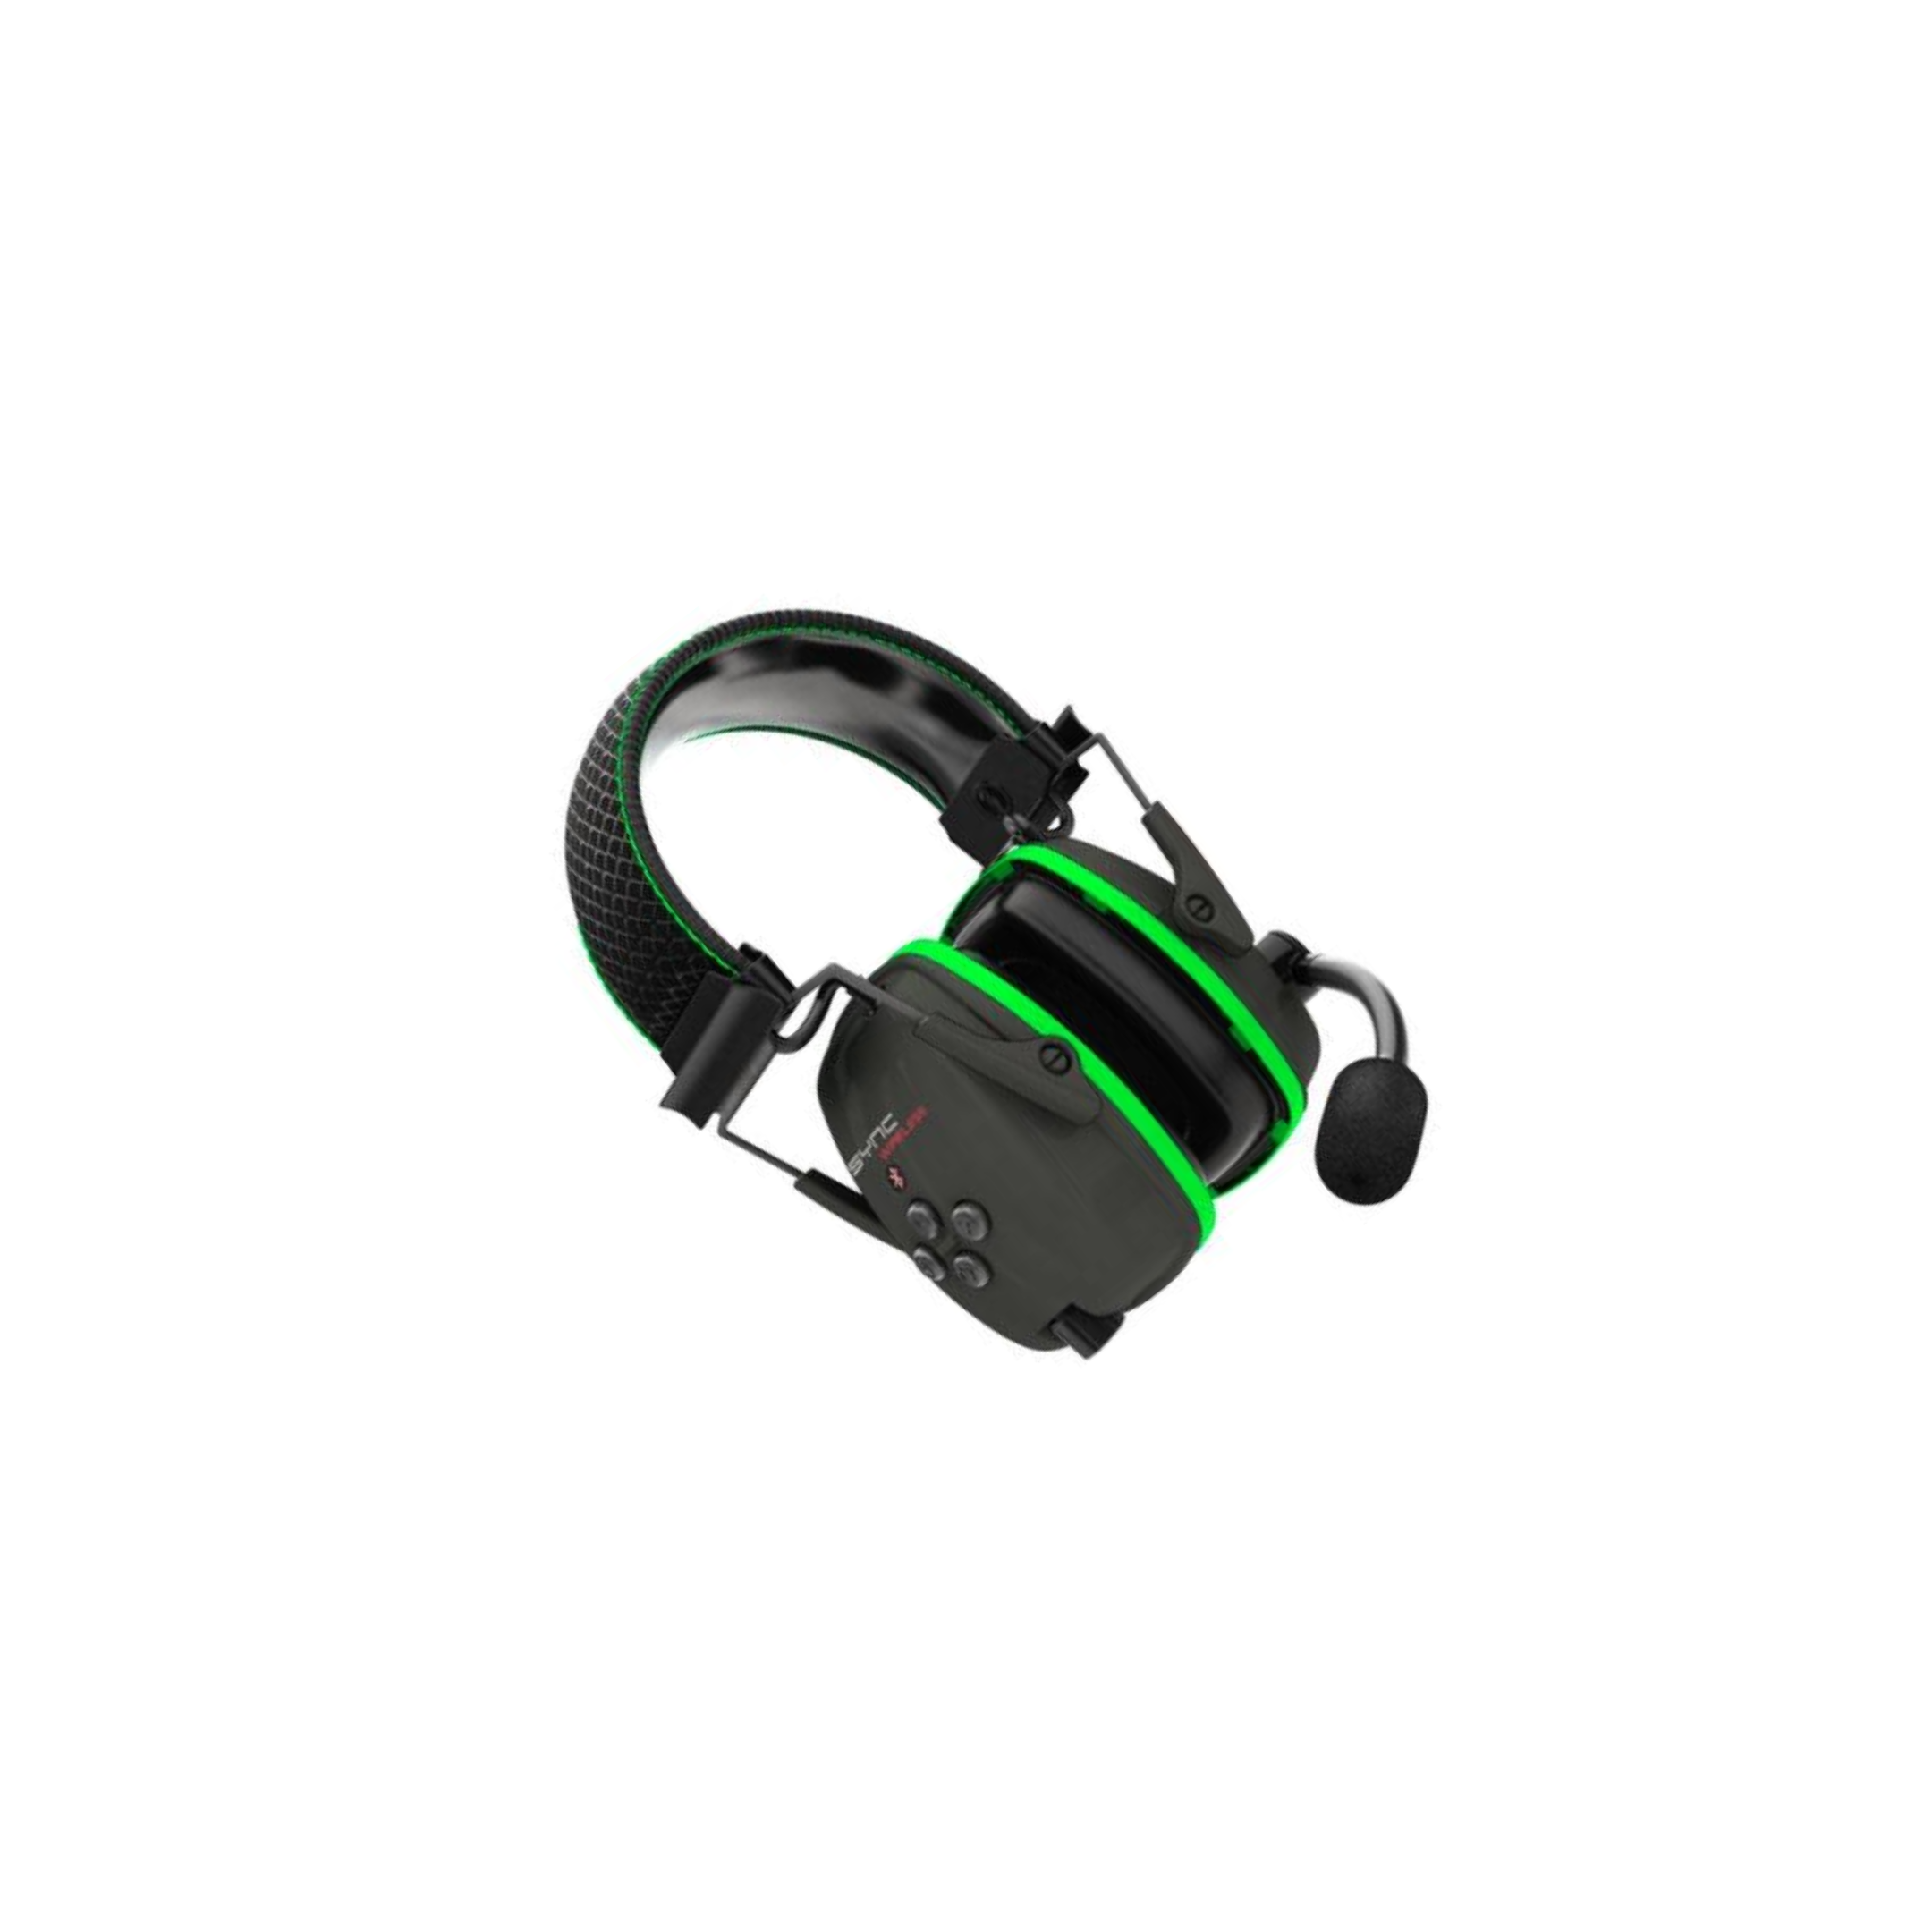 A set of Honeywell's Sync Wireless Earmuff for hunting